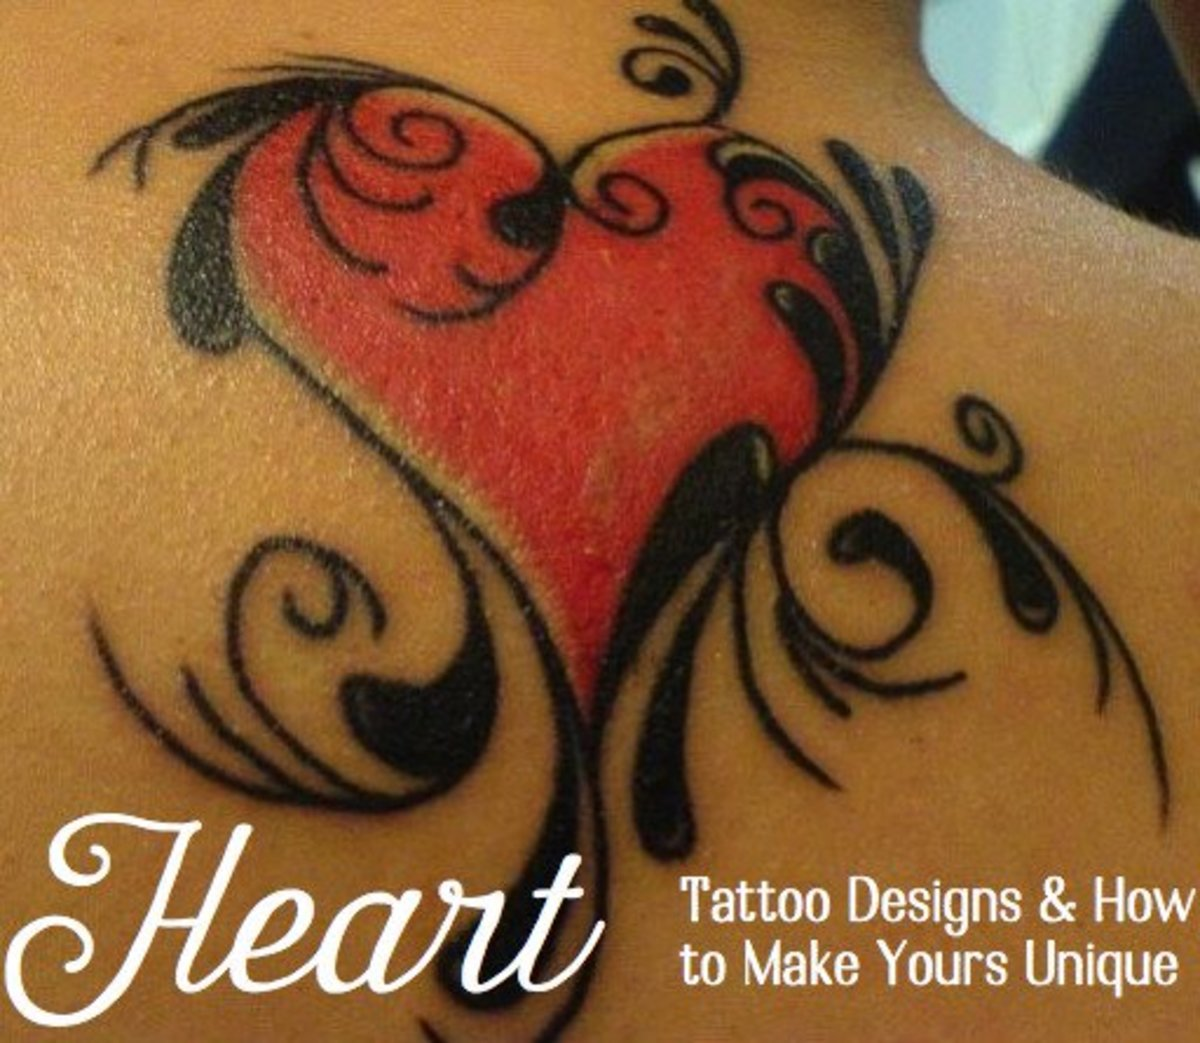 Inking style, size, and accompaniments can alter the meaning of a heart tattoo.